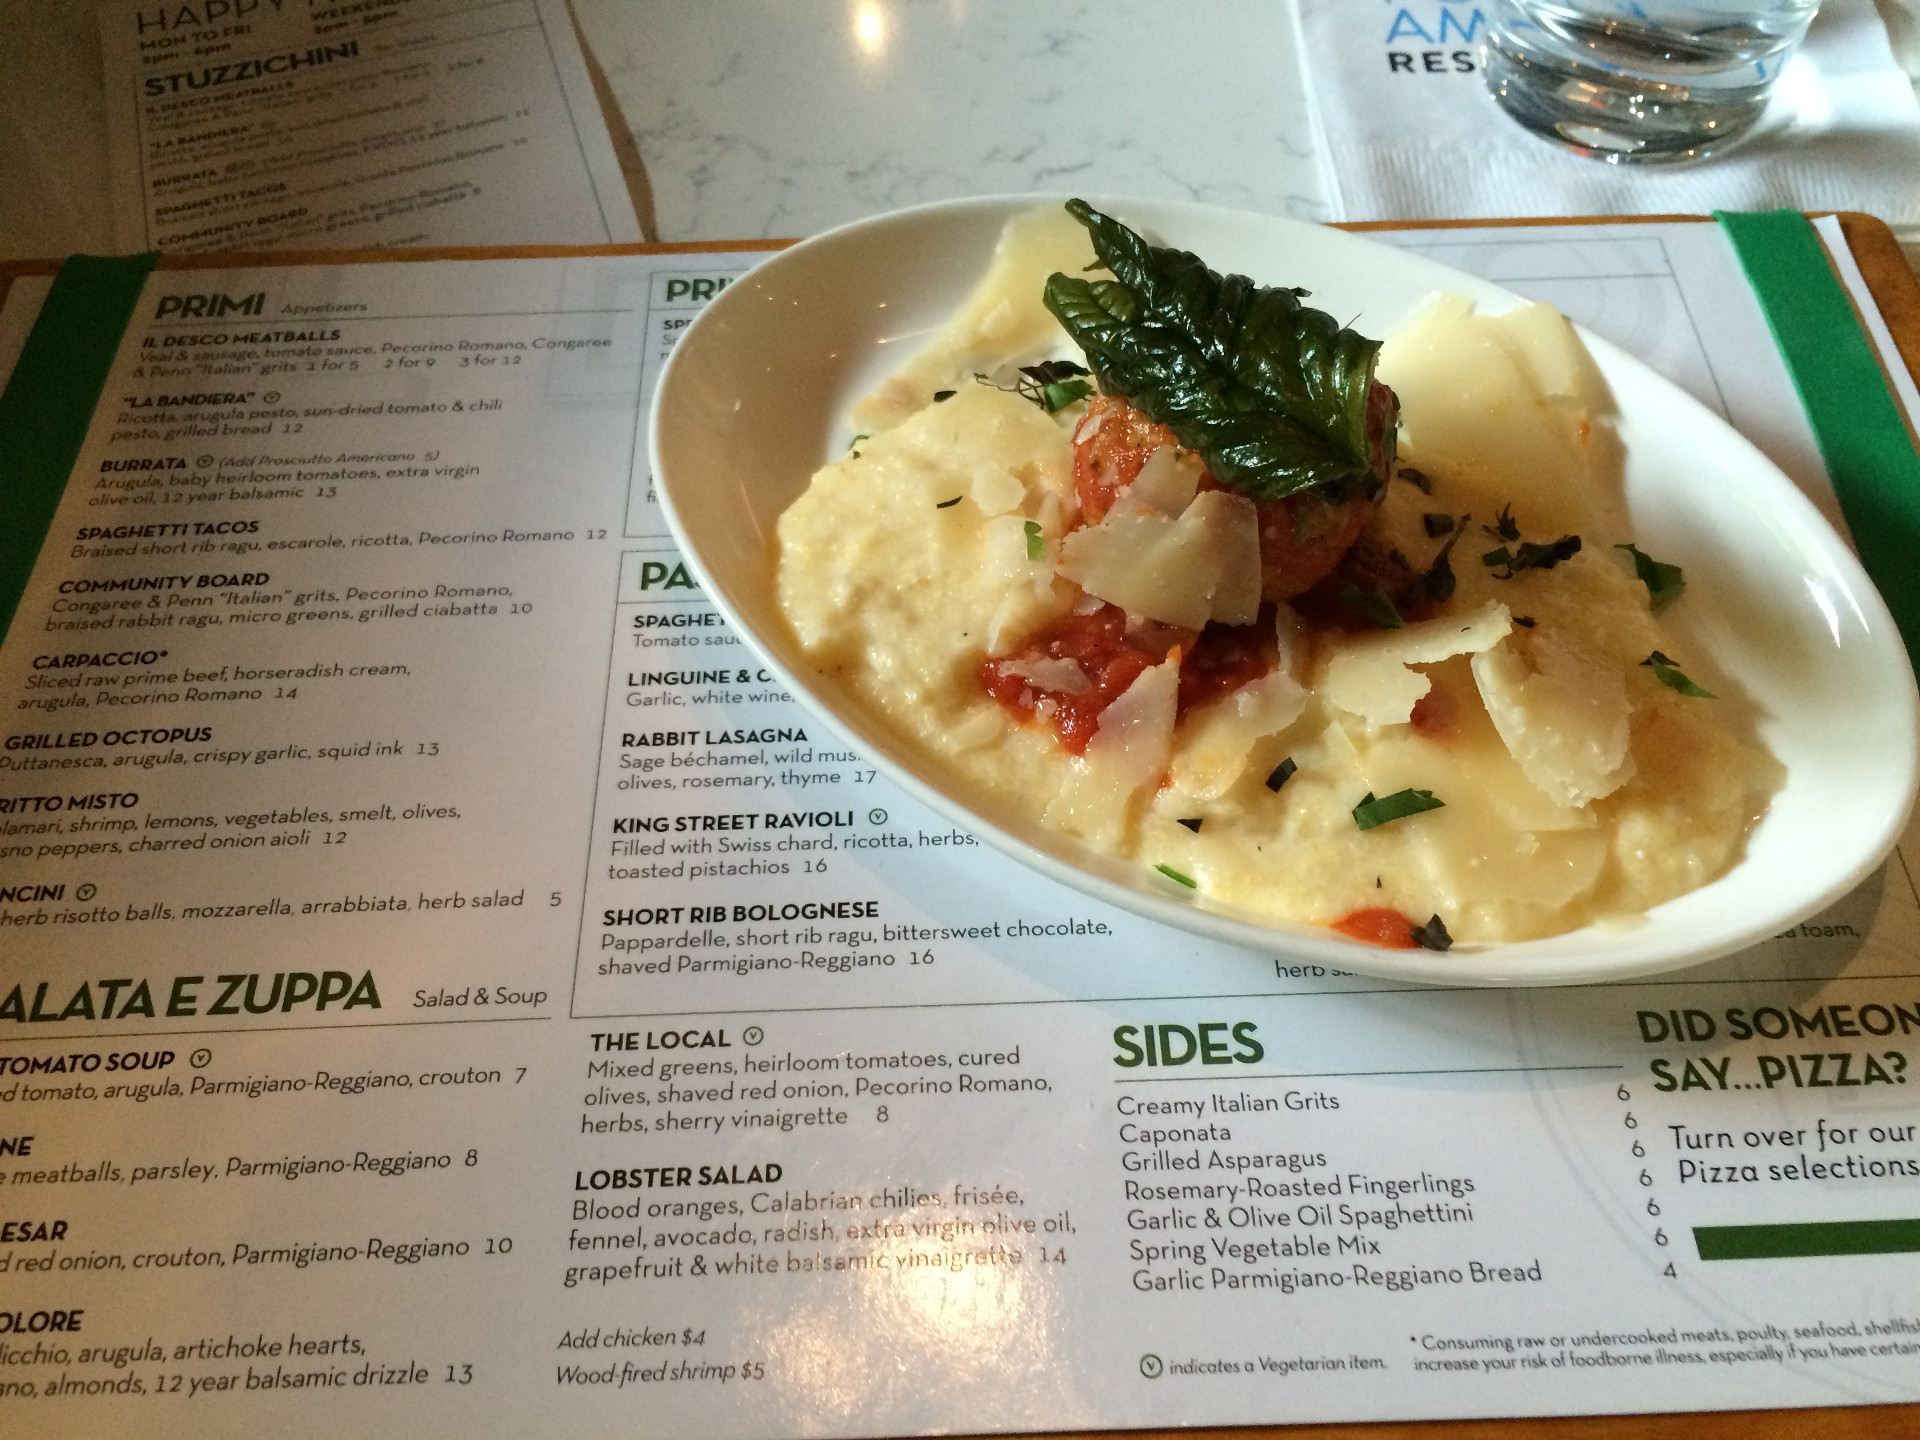 A dish of Italian food at Il Desco in Jacksonville, Florida